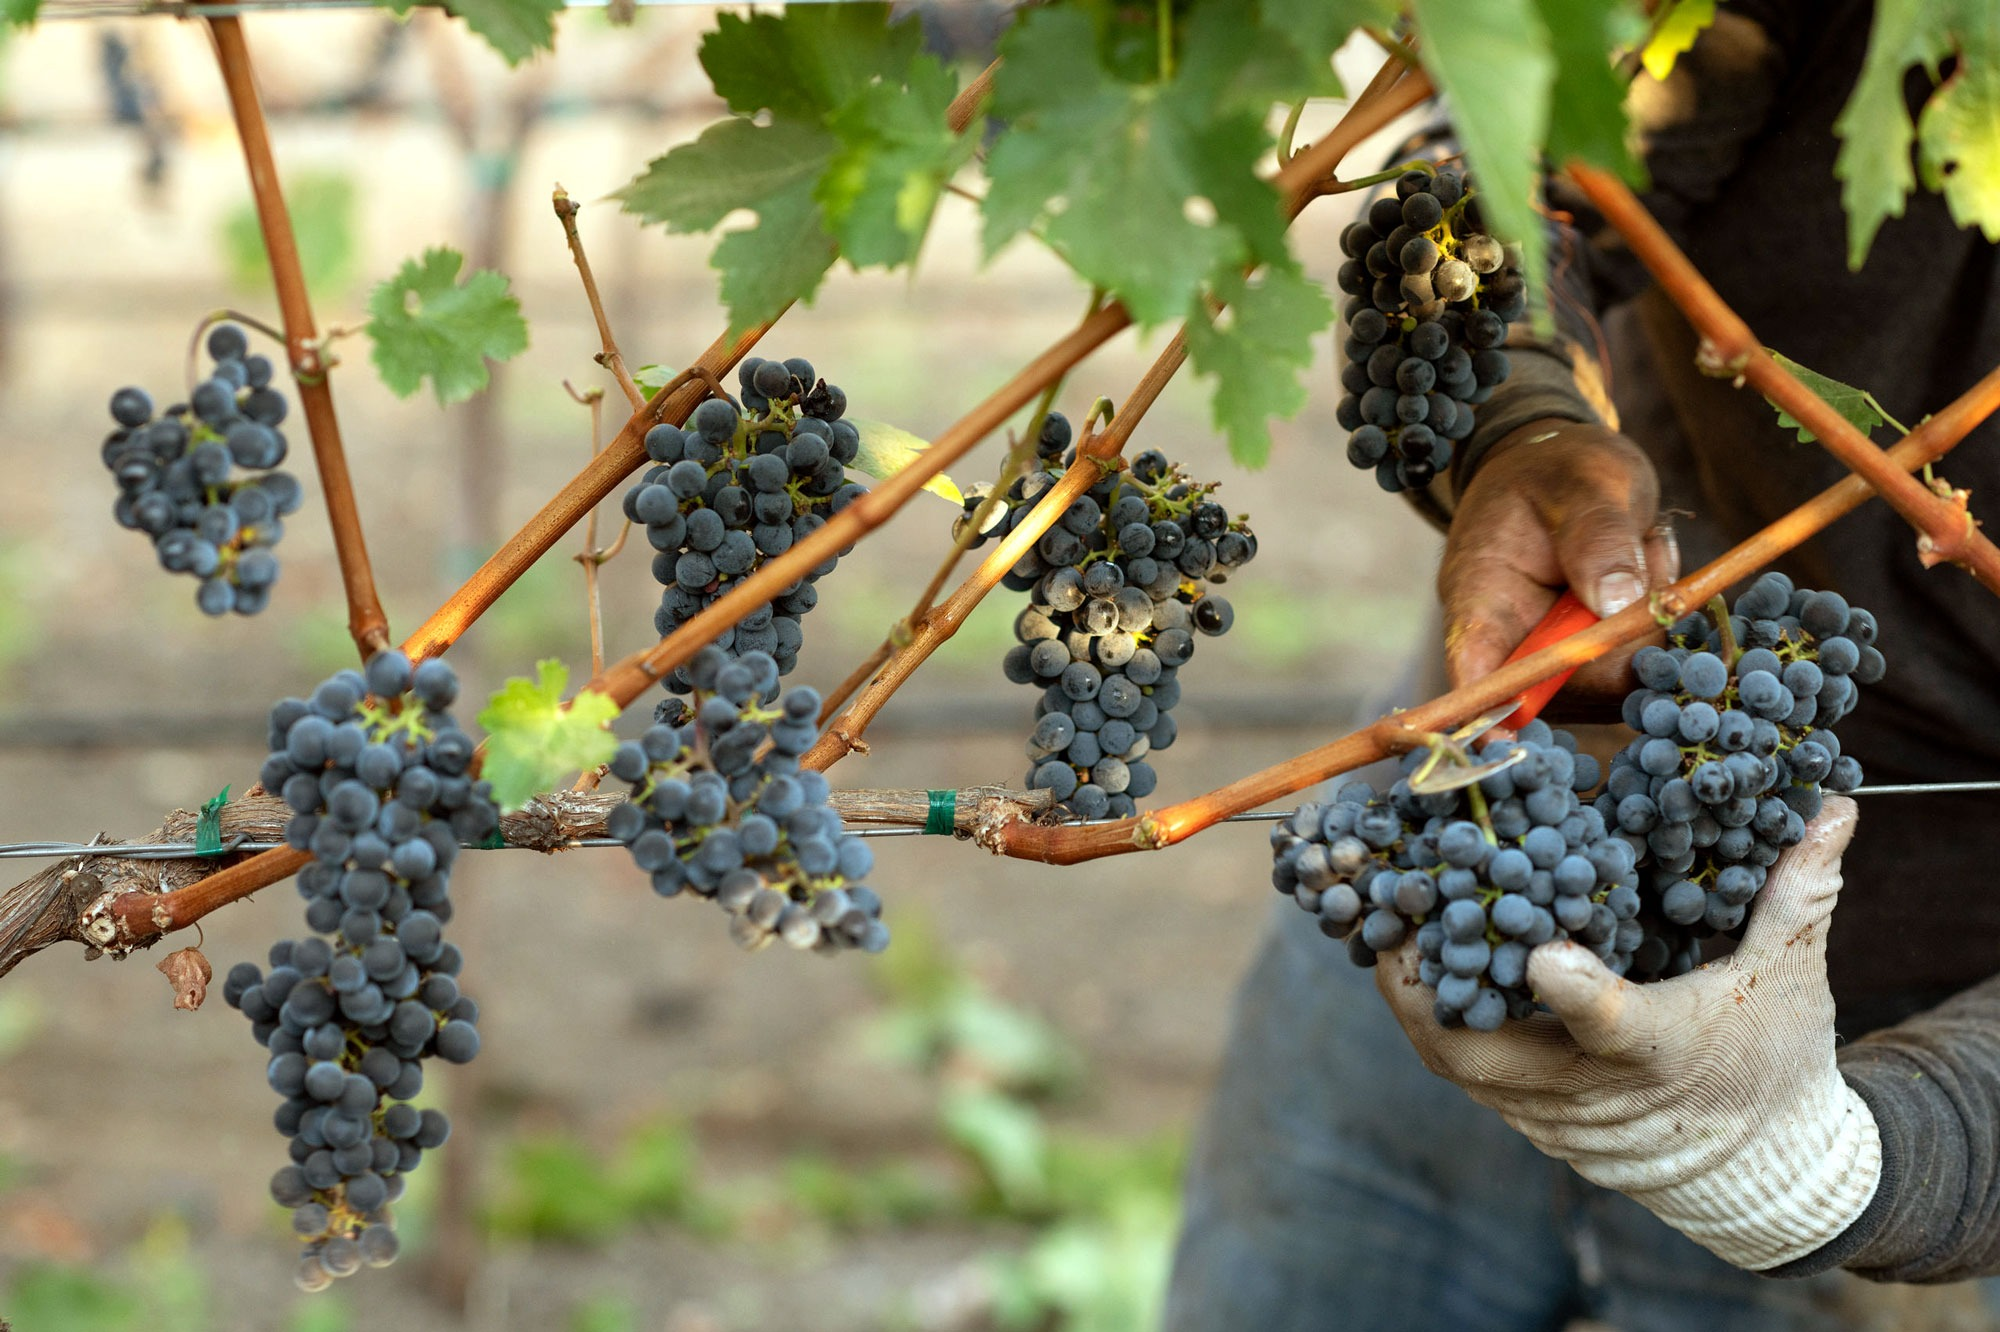 An expert vineyard worker harvests cabernet clusters by hand at M-Bar Ranch, photo by JH Hayes